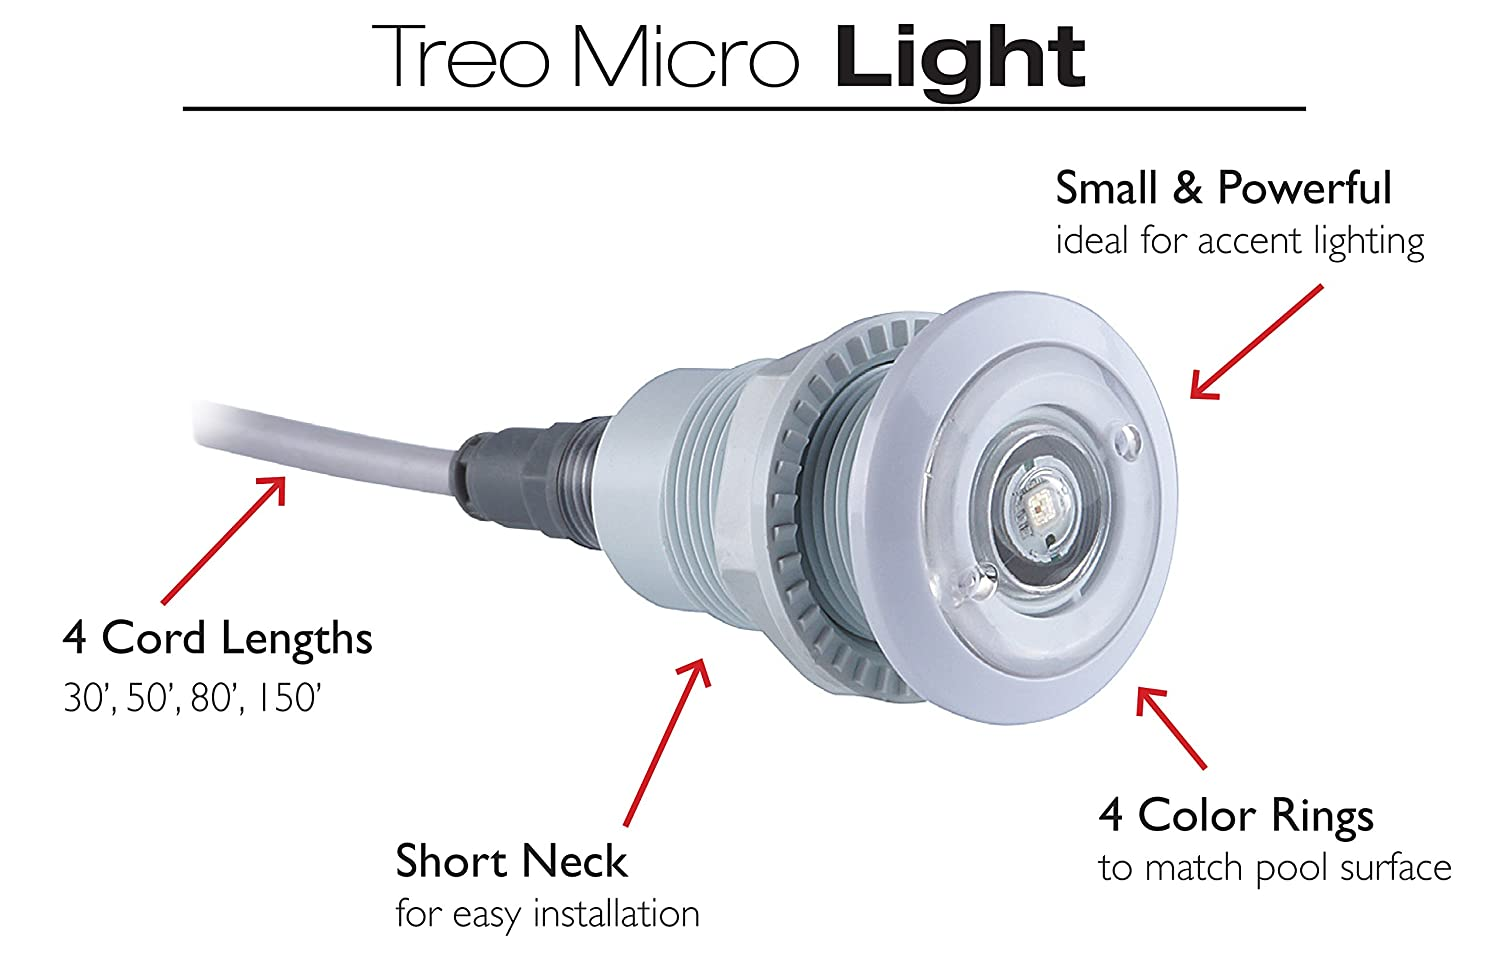 Amazon.com : S.R.Smith FLED-TM-C-80 12V & 2W Treo Micro LED Pool Accent  Light, 80' Cord, Red/Blue/Green : Garden & Outdoor